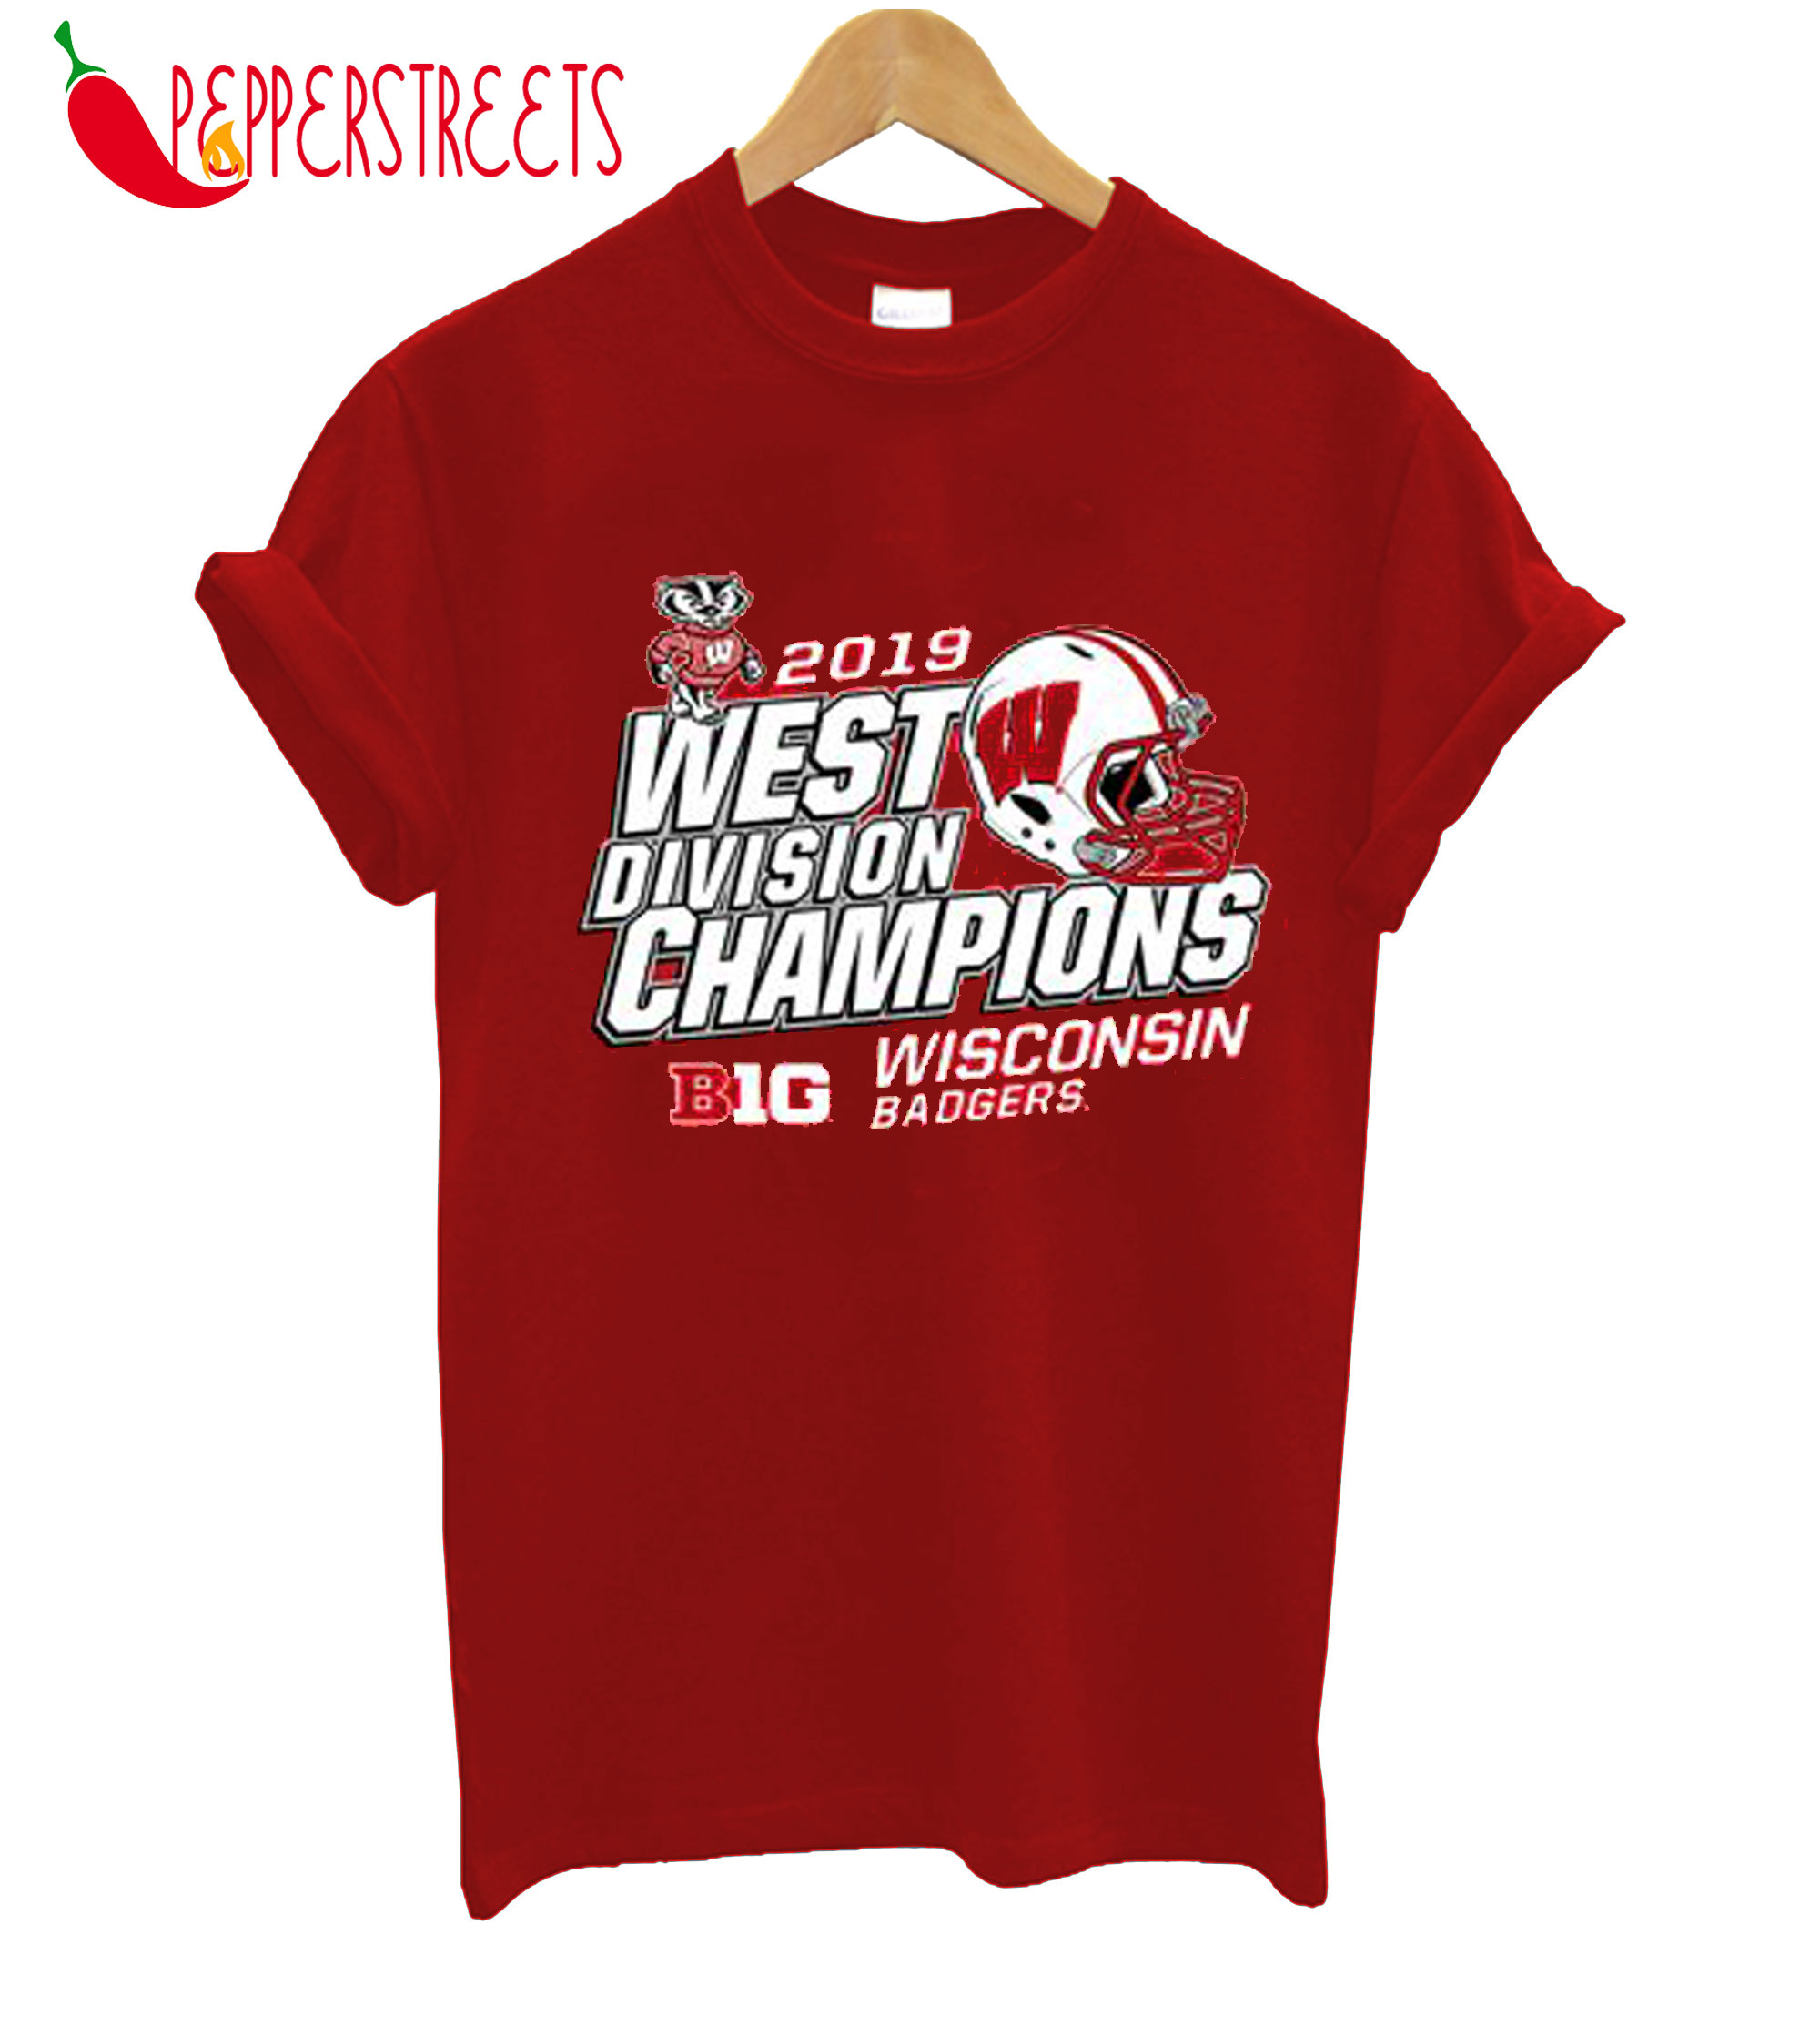 2019 West Division Champions Wisconsin Badgers T-Shirt